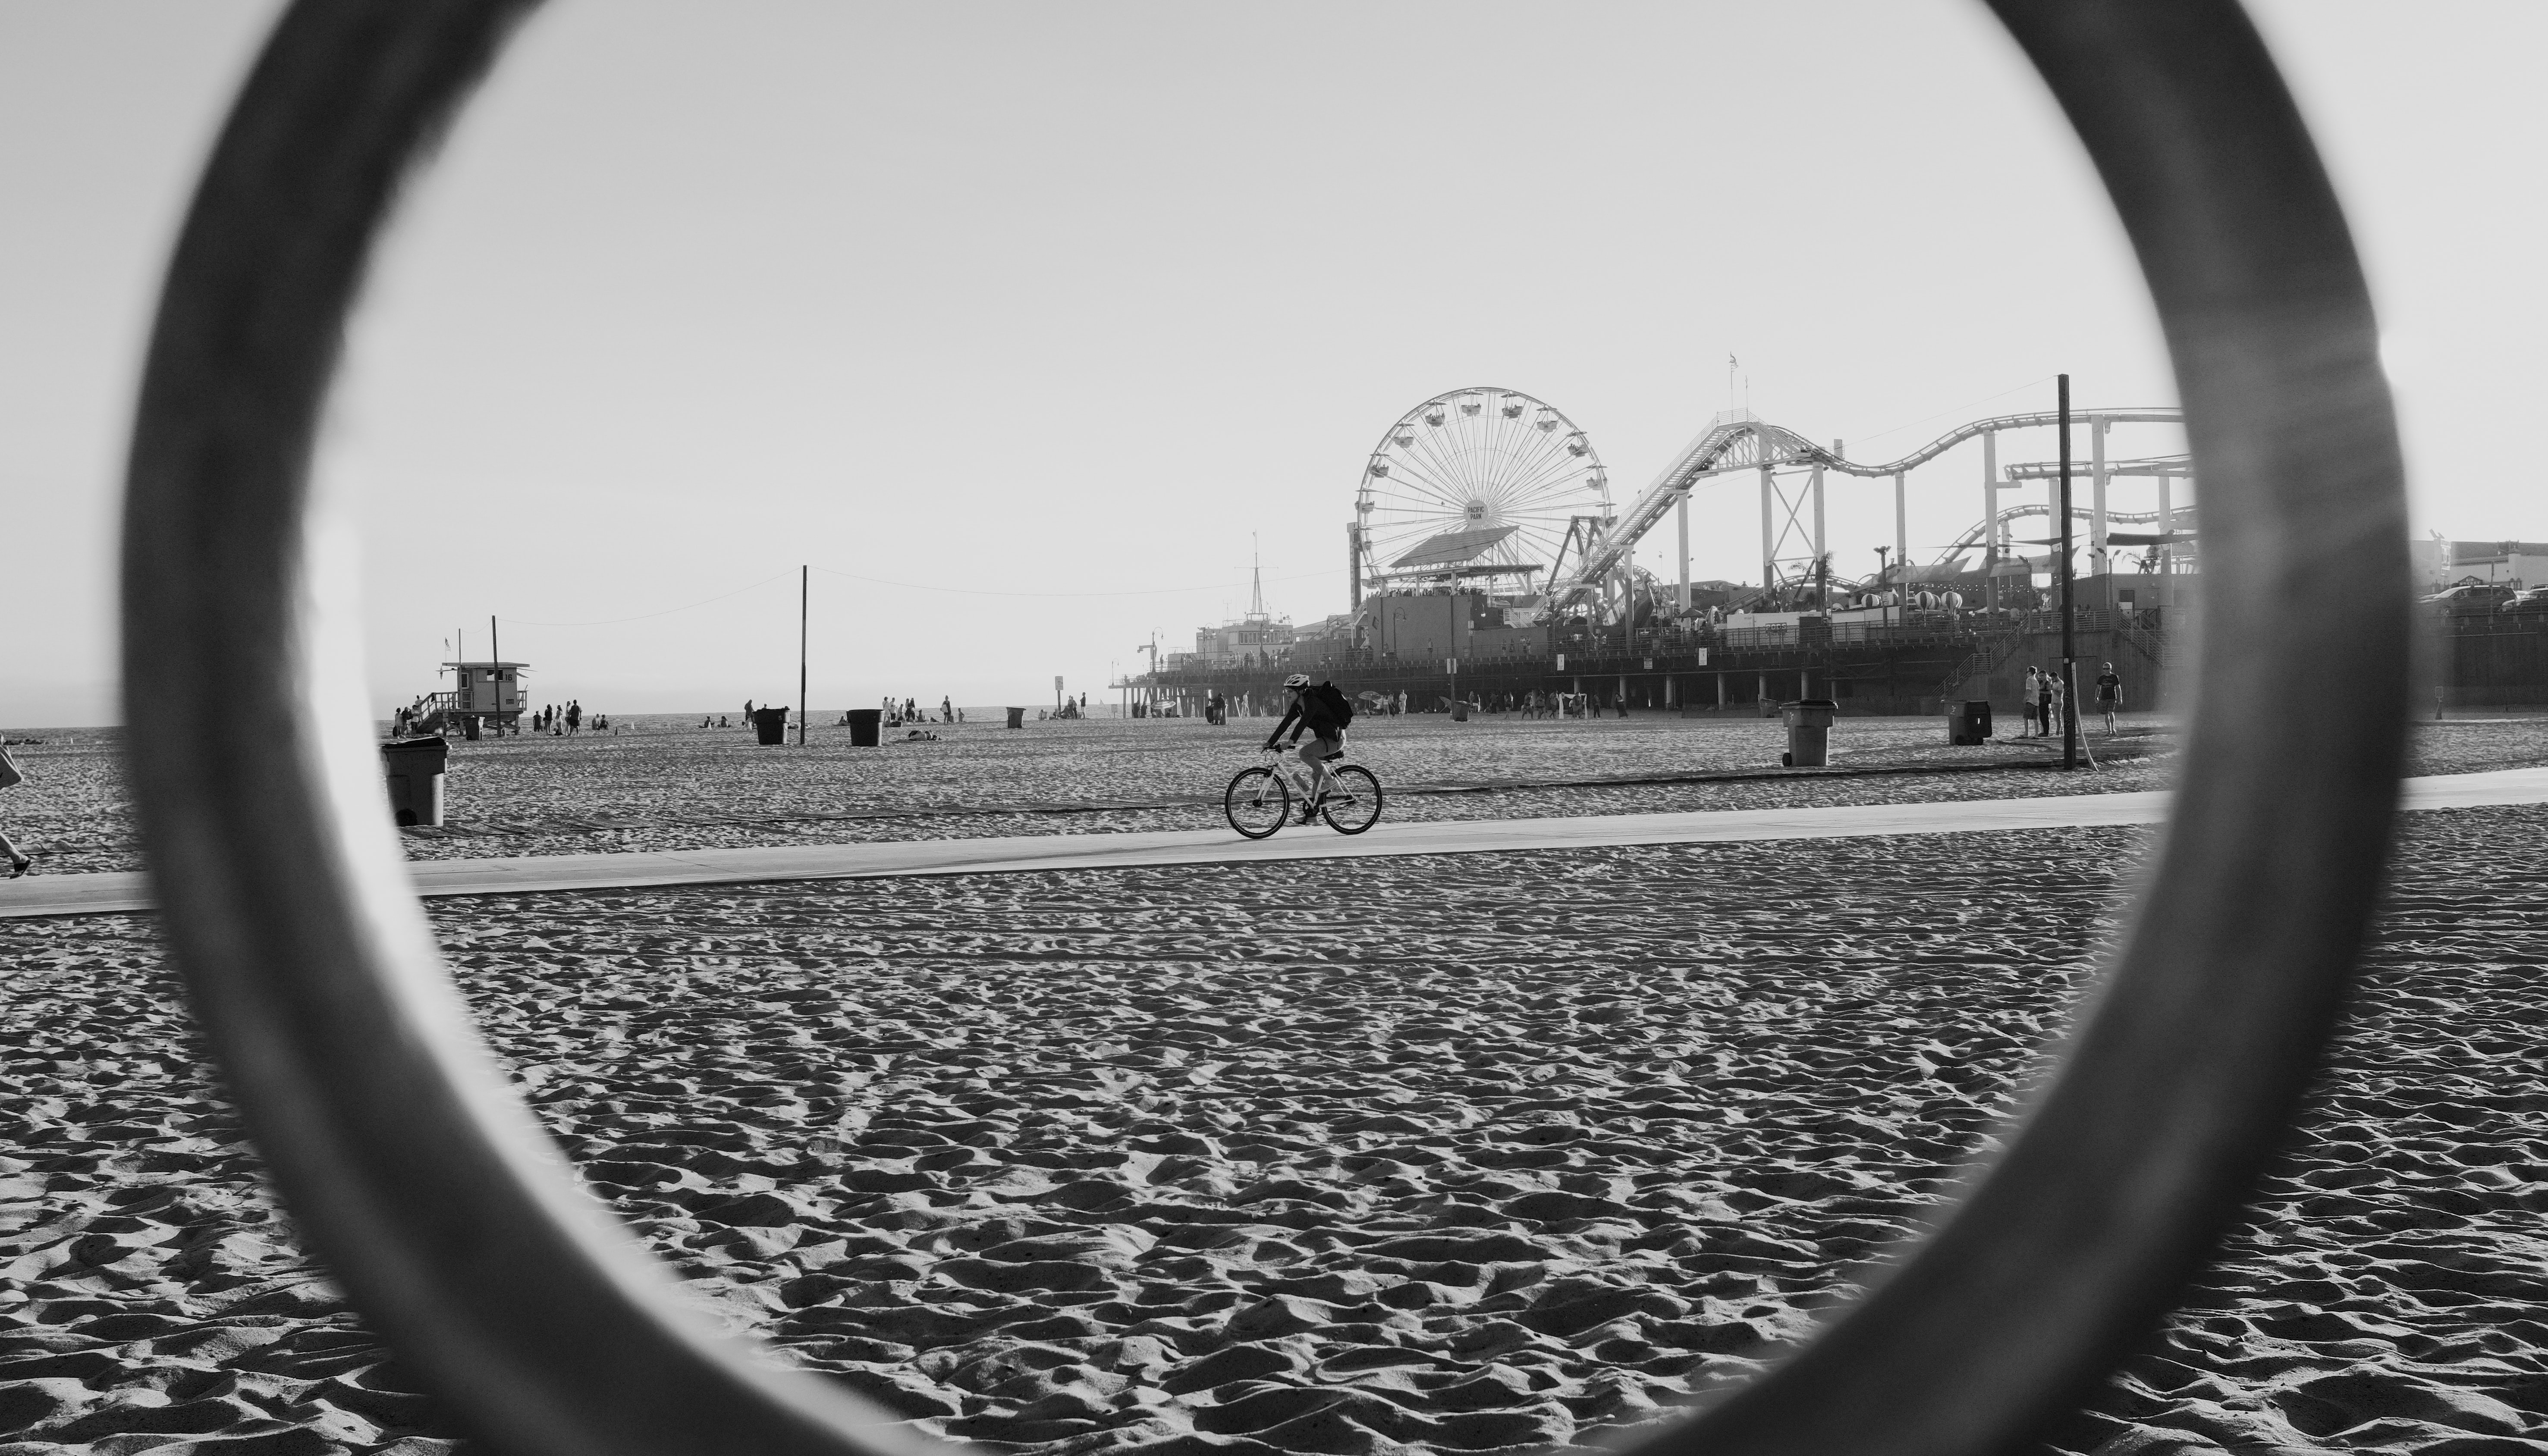 View of the cyclist on the beach sand path by the Santa Monica Pier